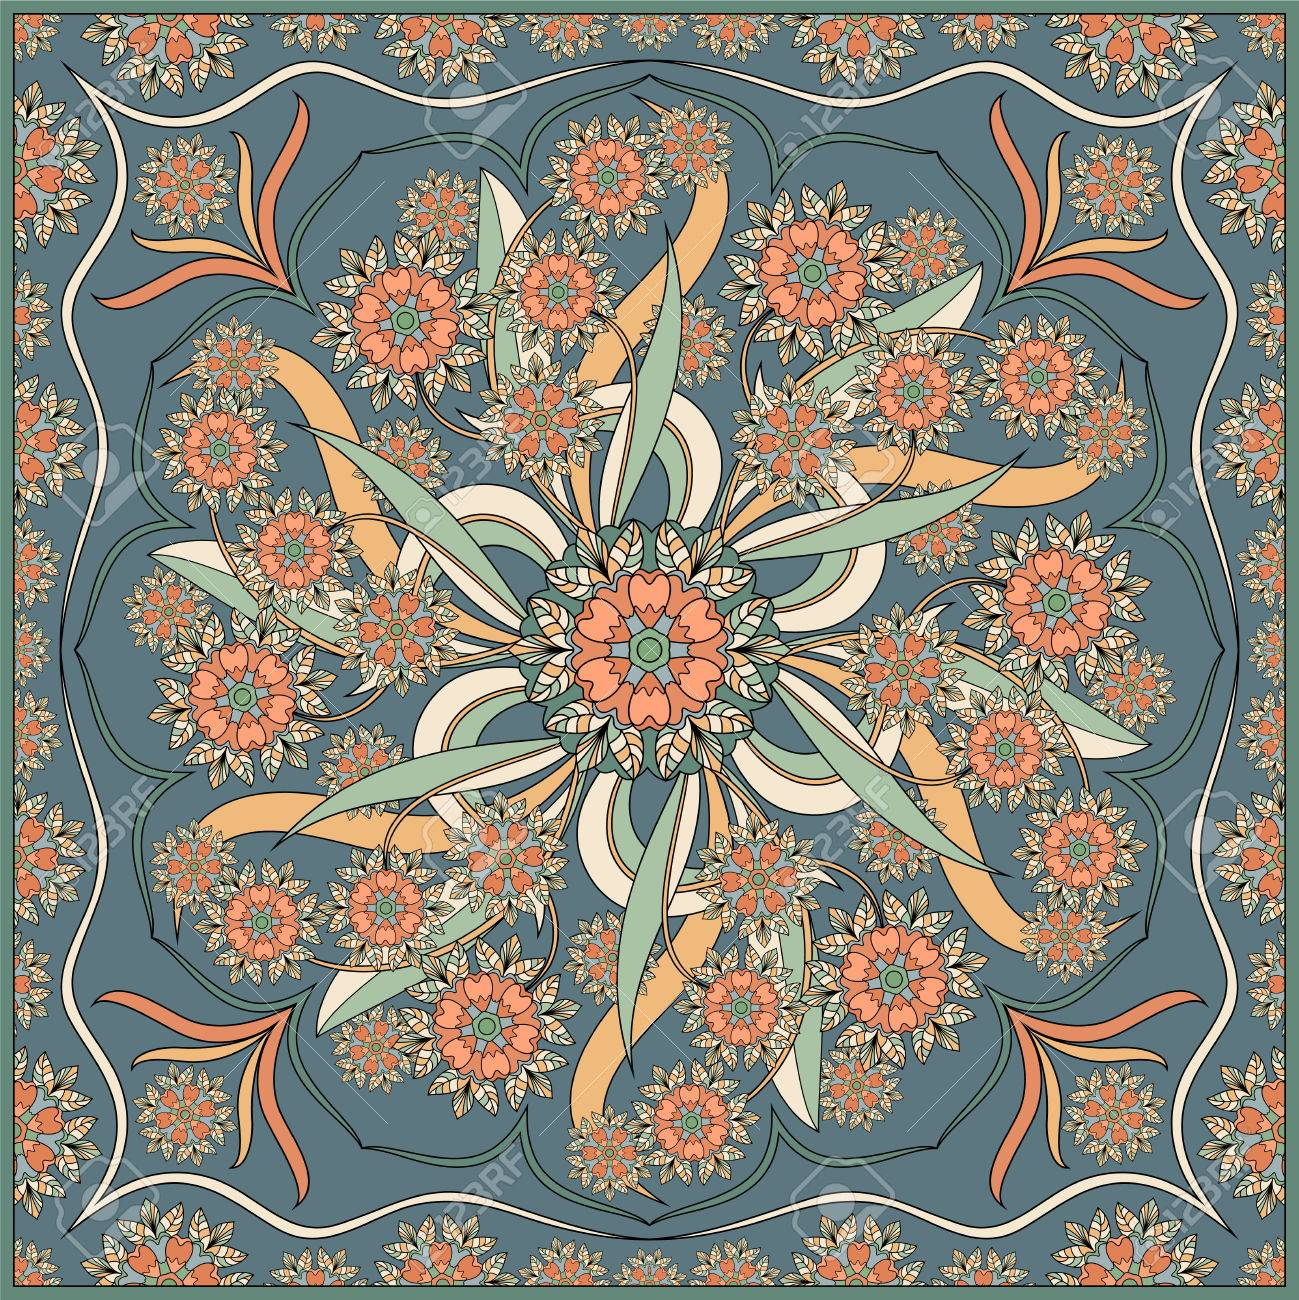 Detailed floral pattern for scarf, shawl, carpet or embroidery. Vector illustration. - 61067102